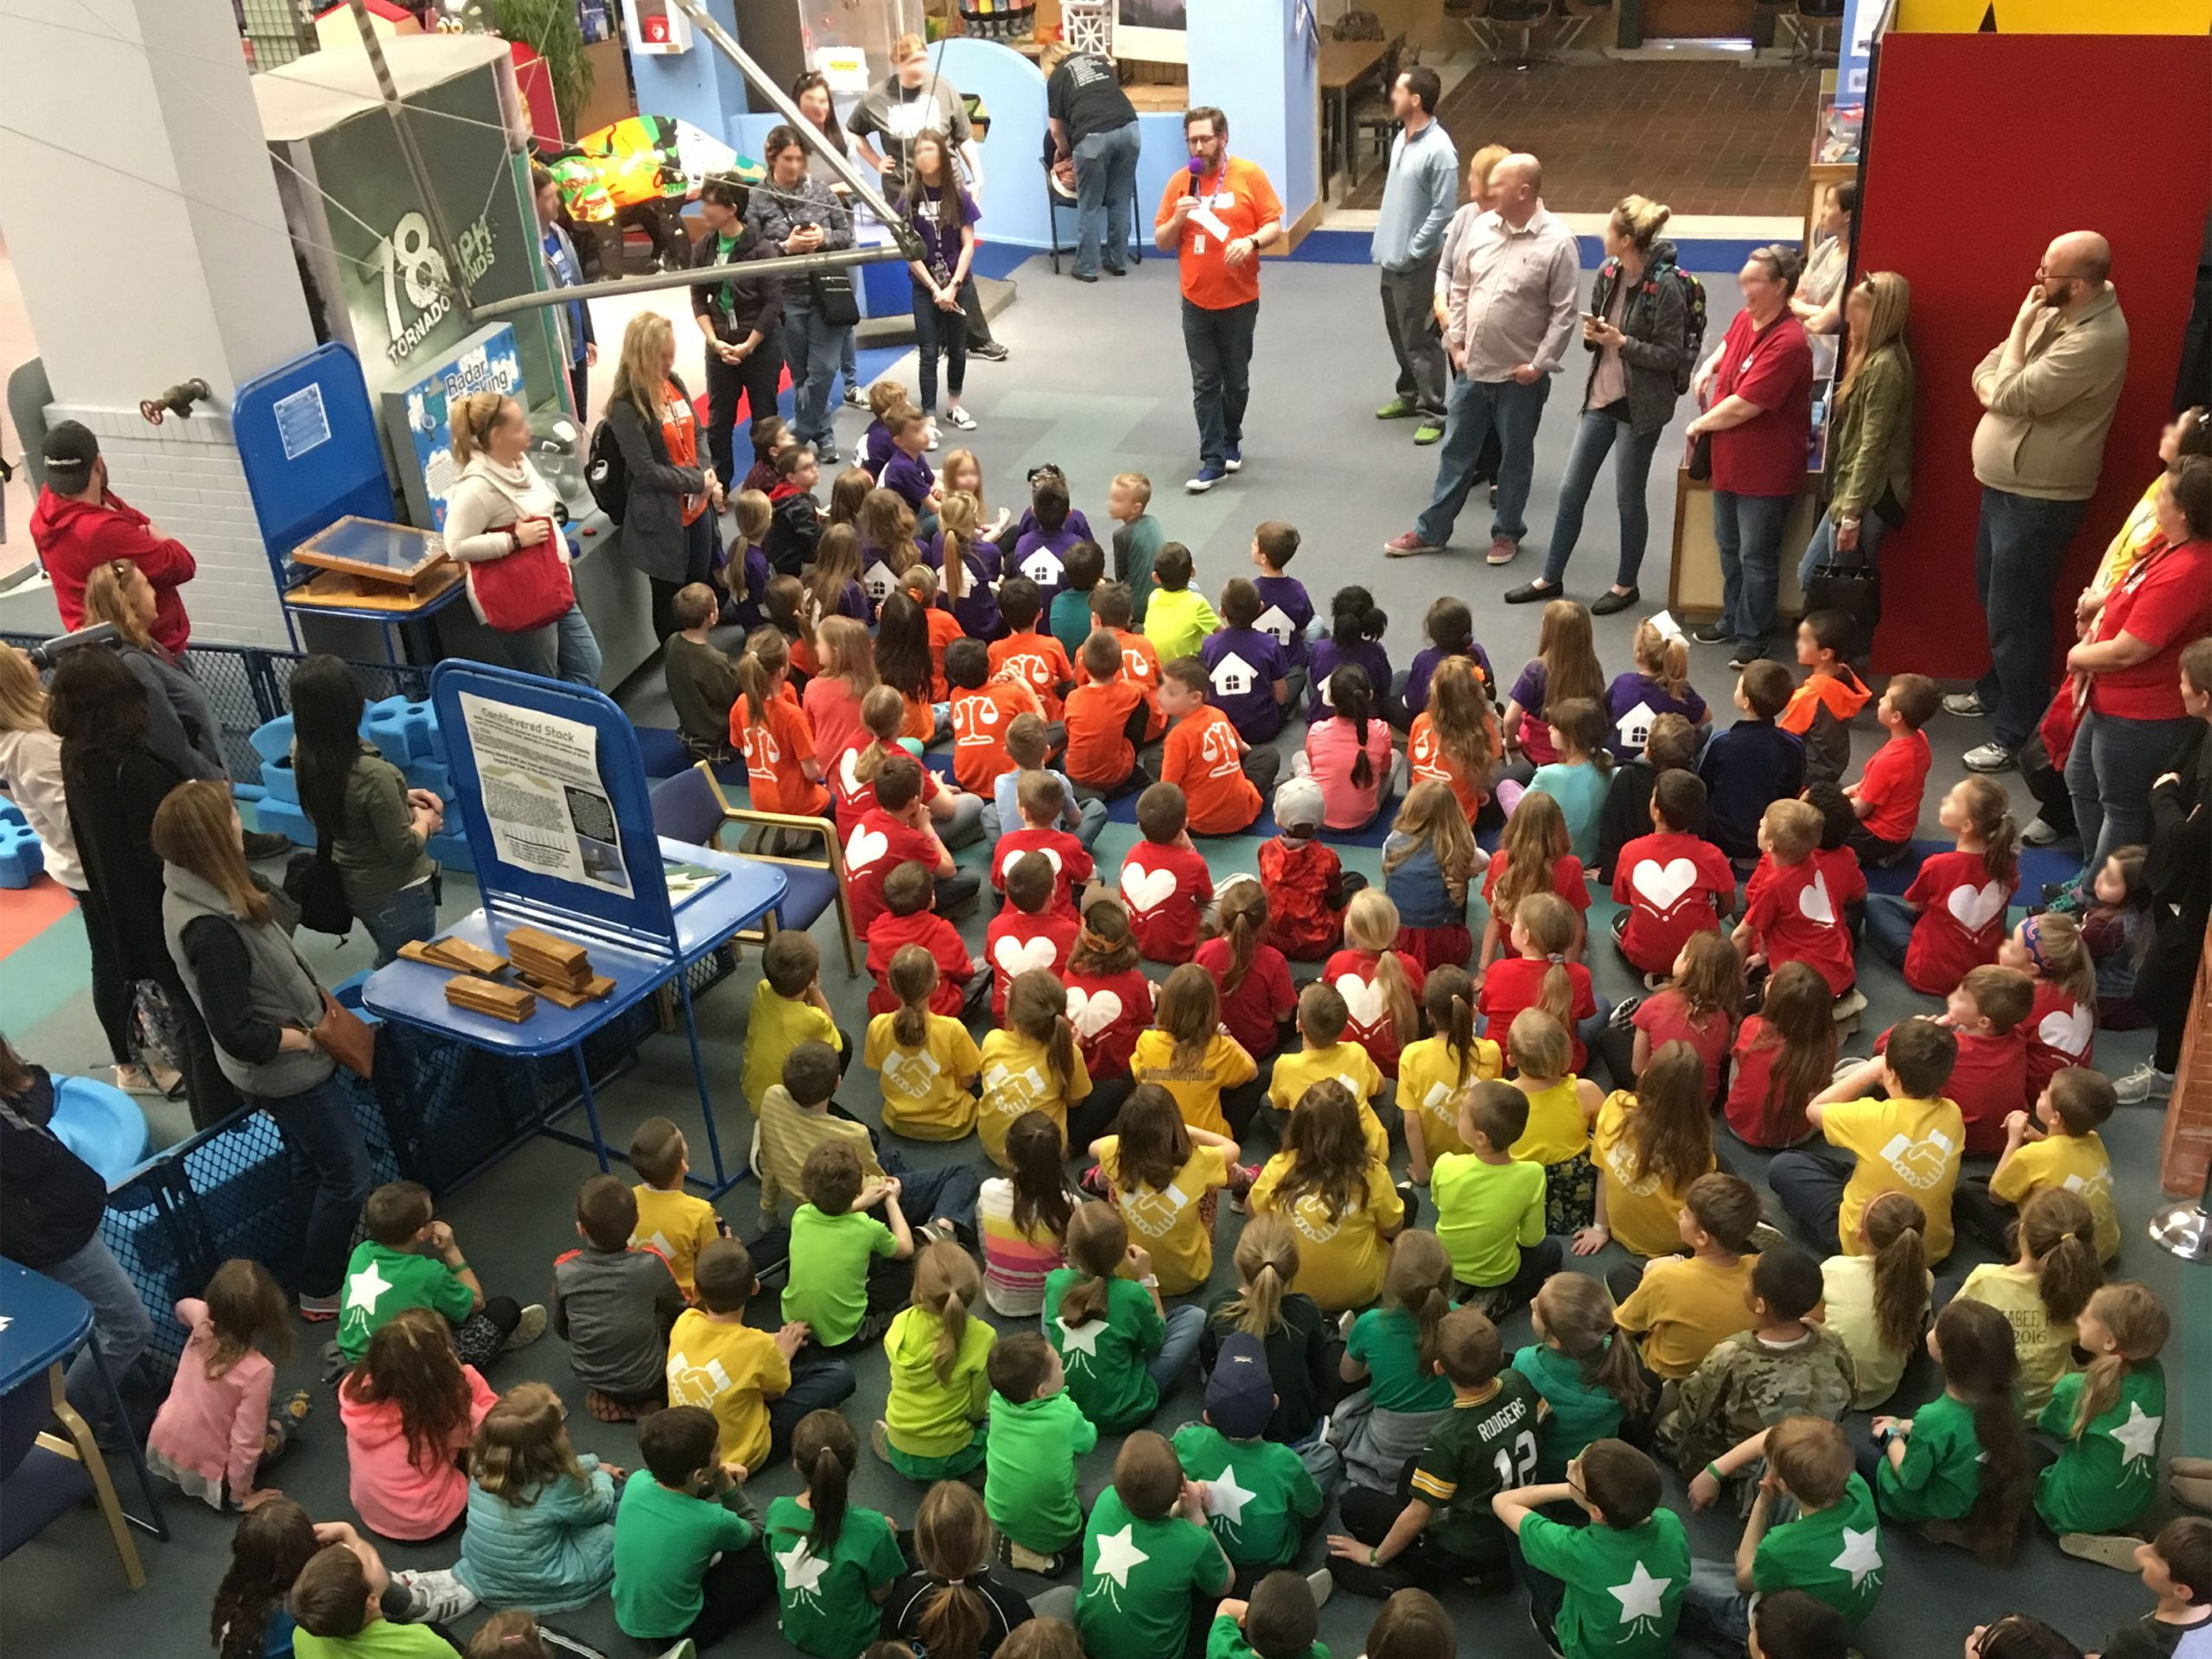 A volunteer prepares a large school field trip for a day of STEM activities. Photo: SciTech Museum